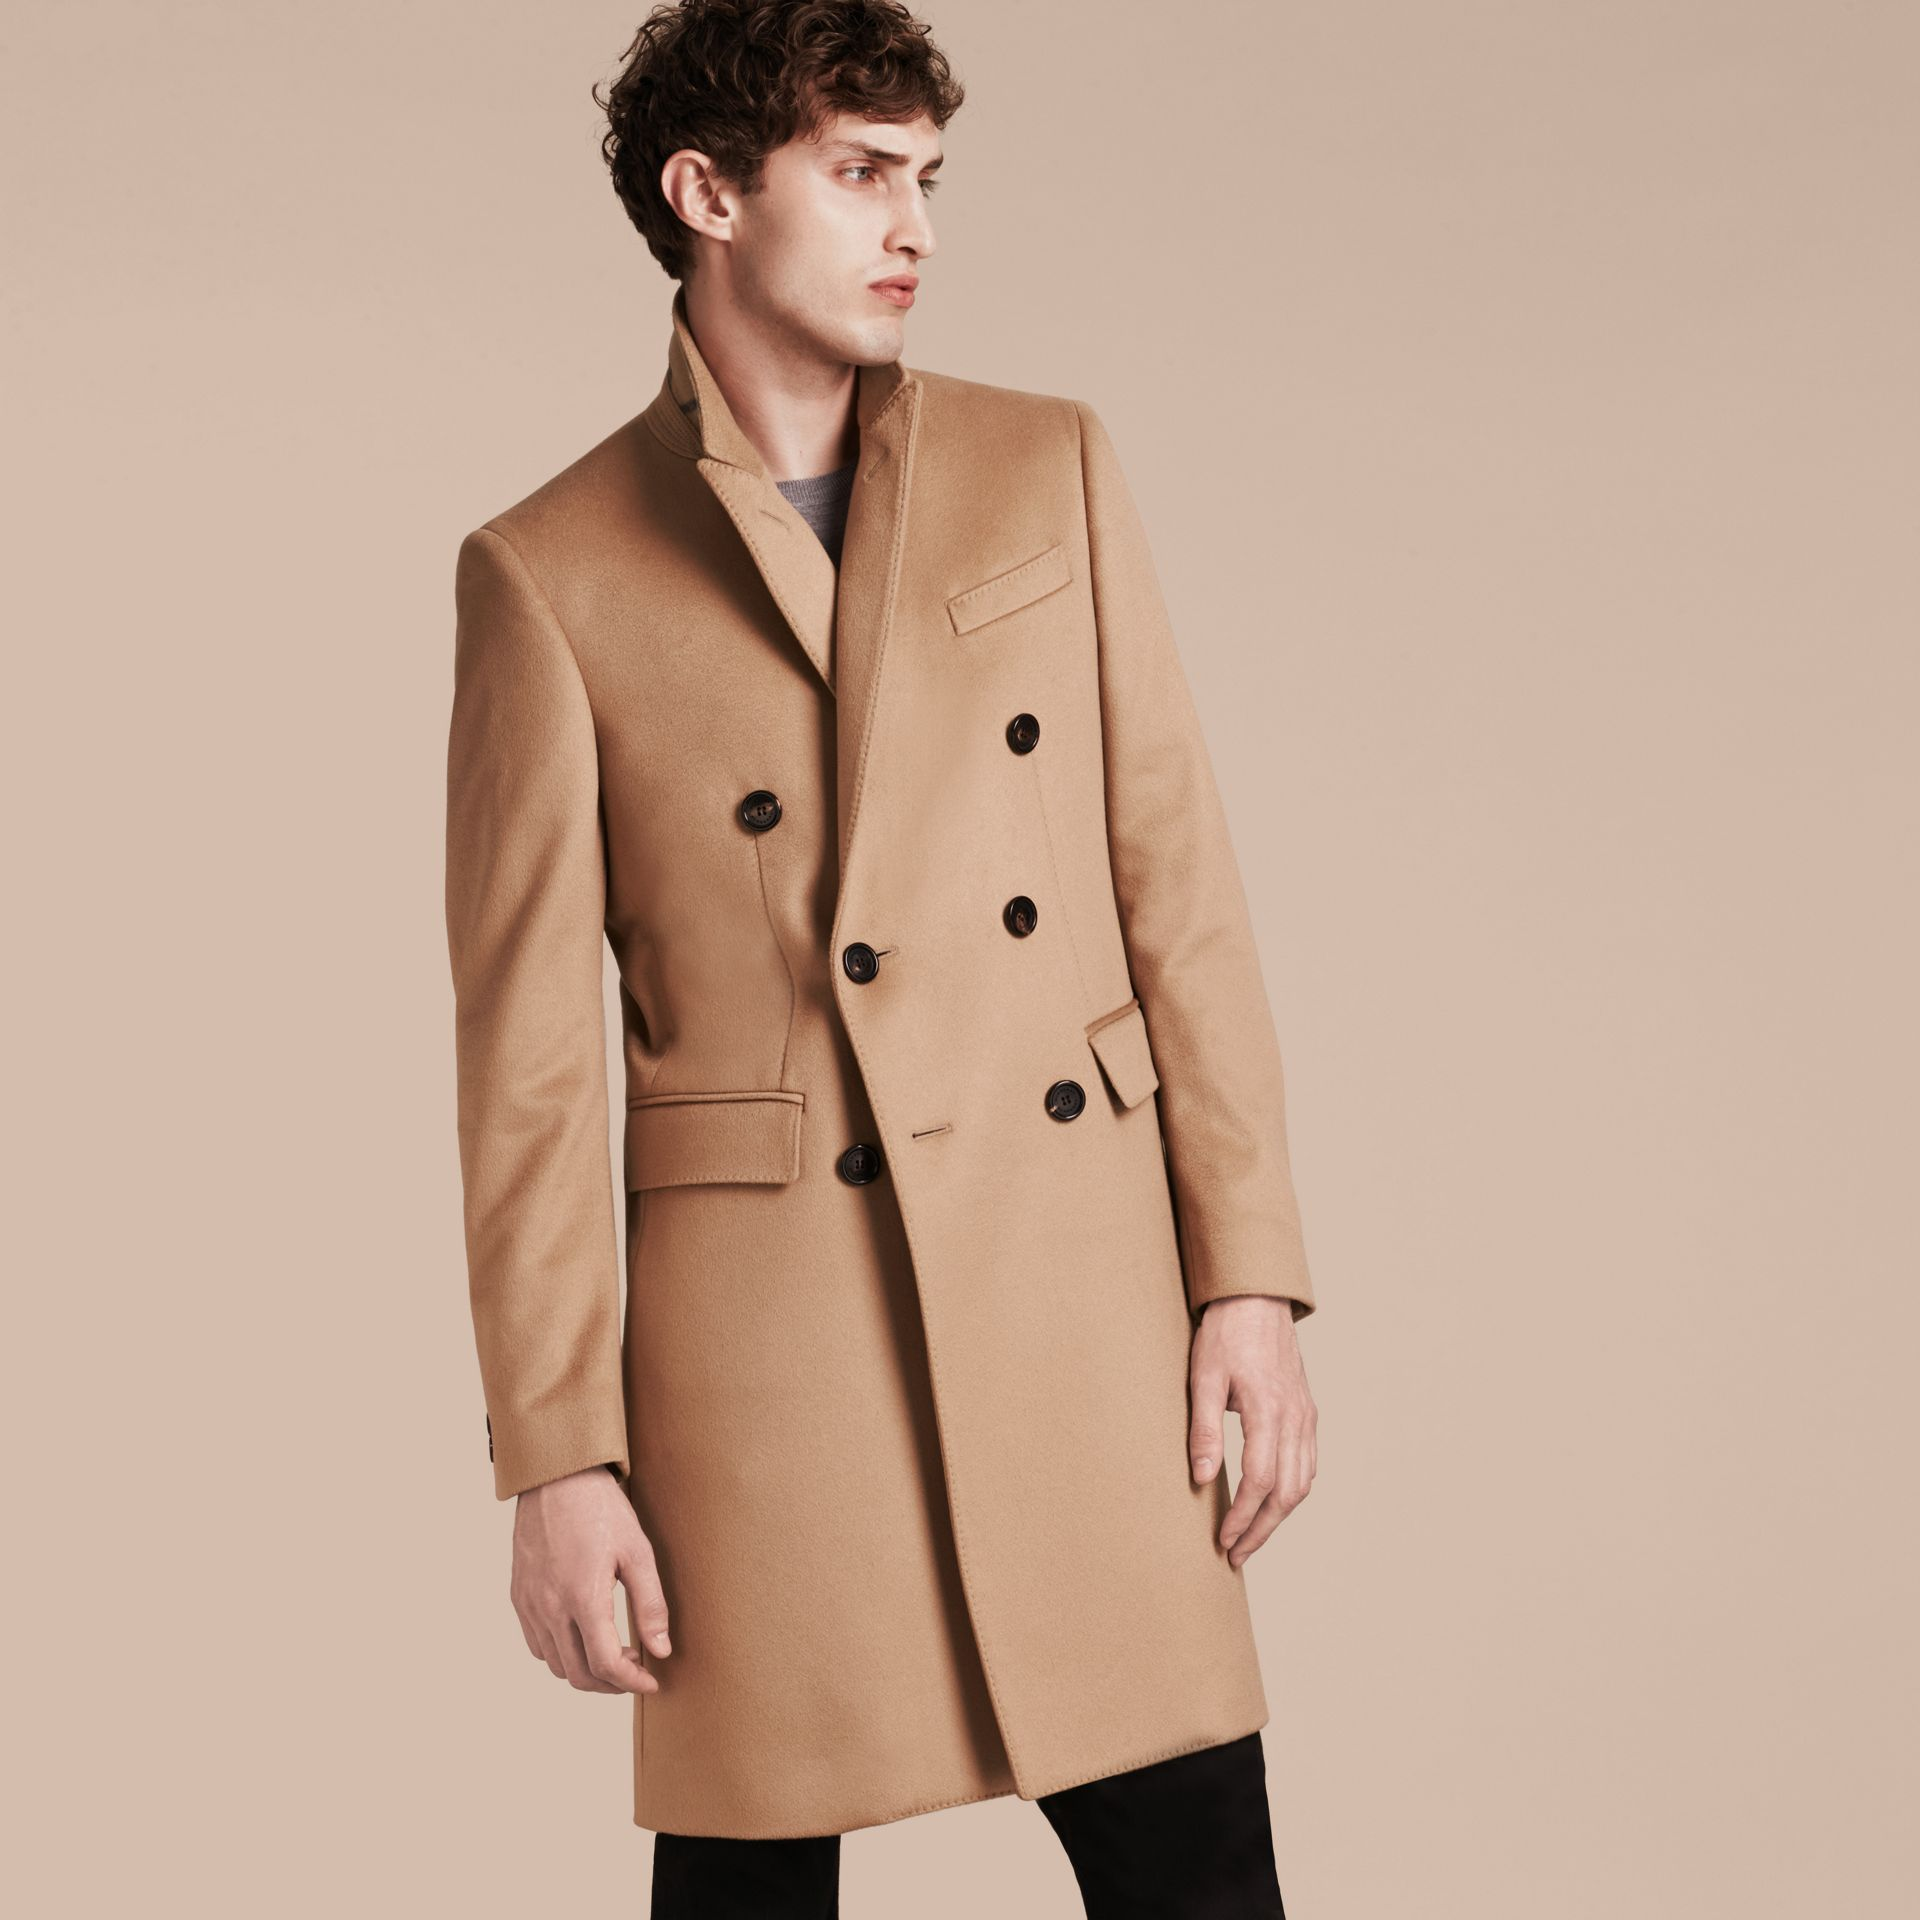 Camel Double-breasted Tailored Cashmere Coat - gallery image 7